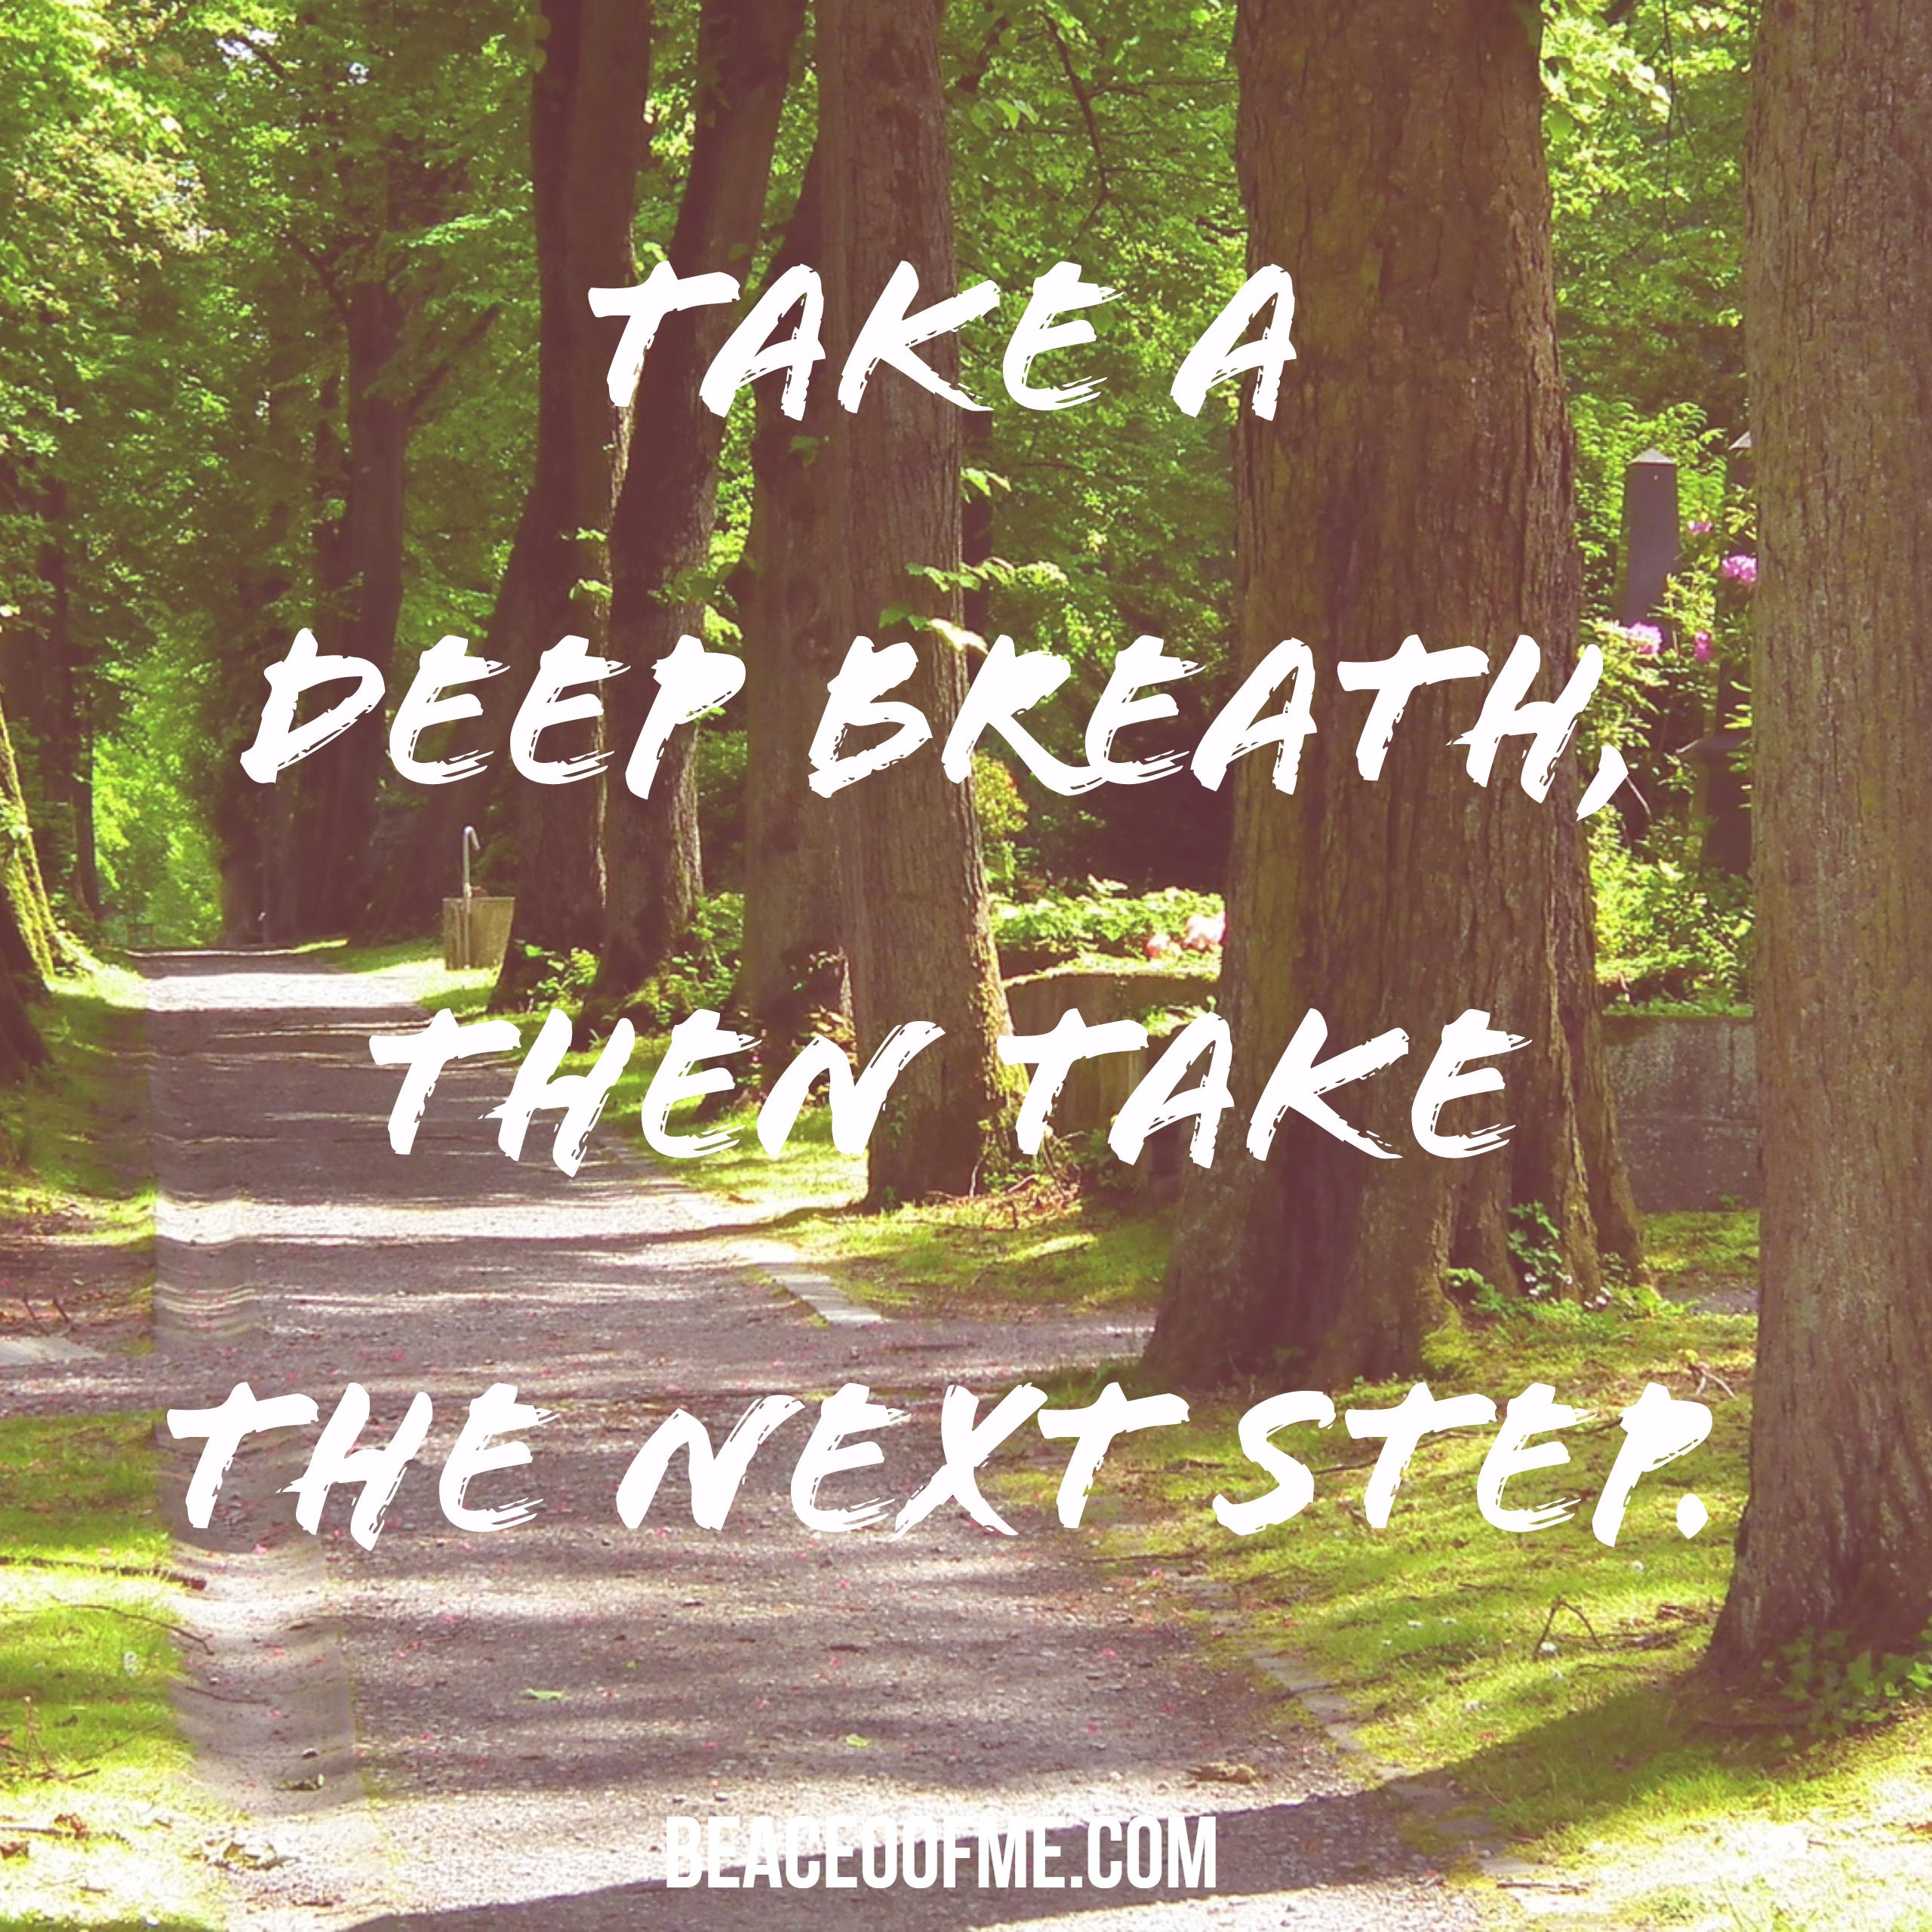 take-a-deep-breath-then-take-the-next-step